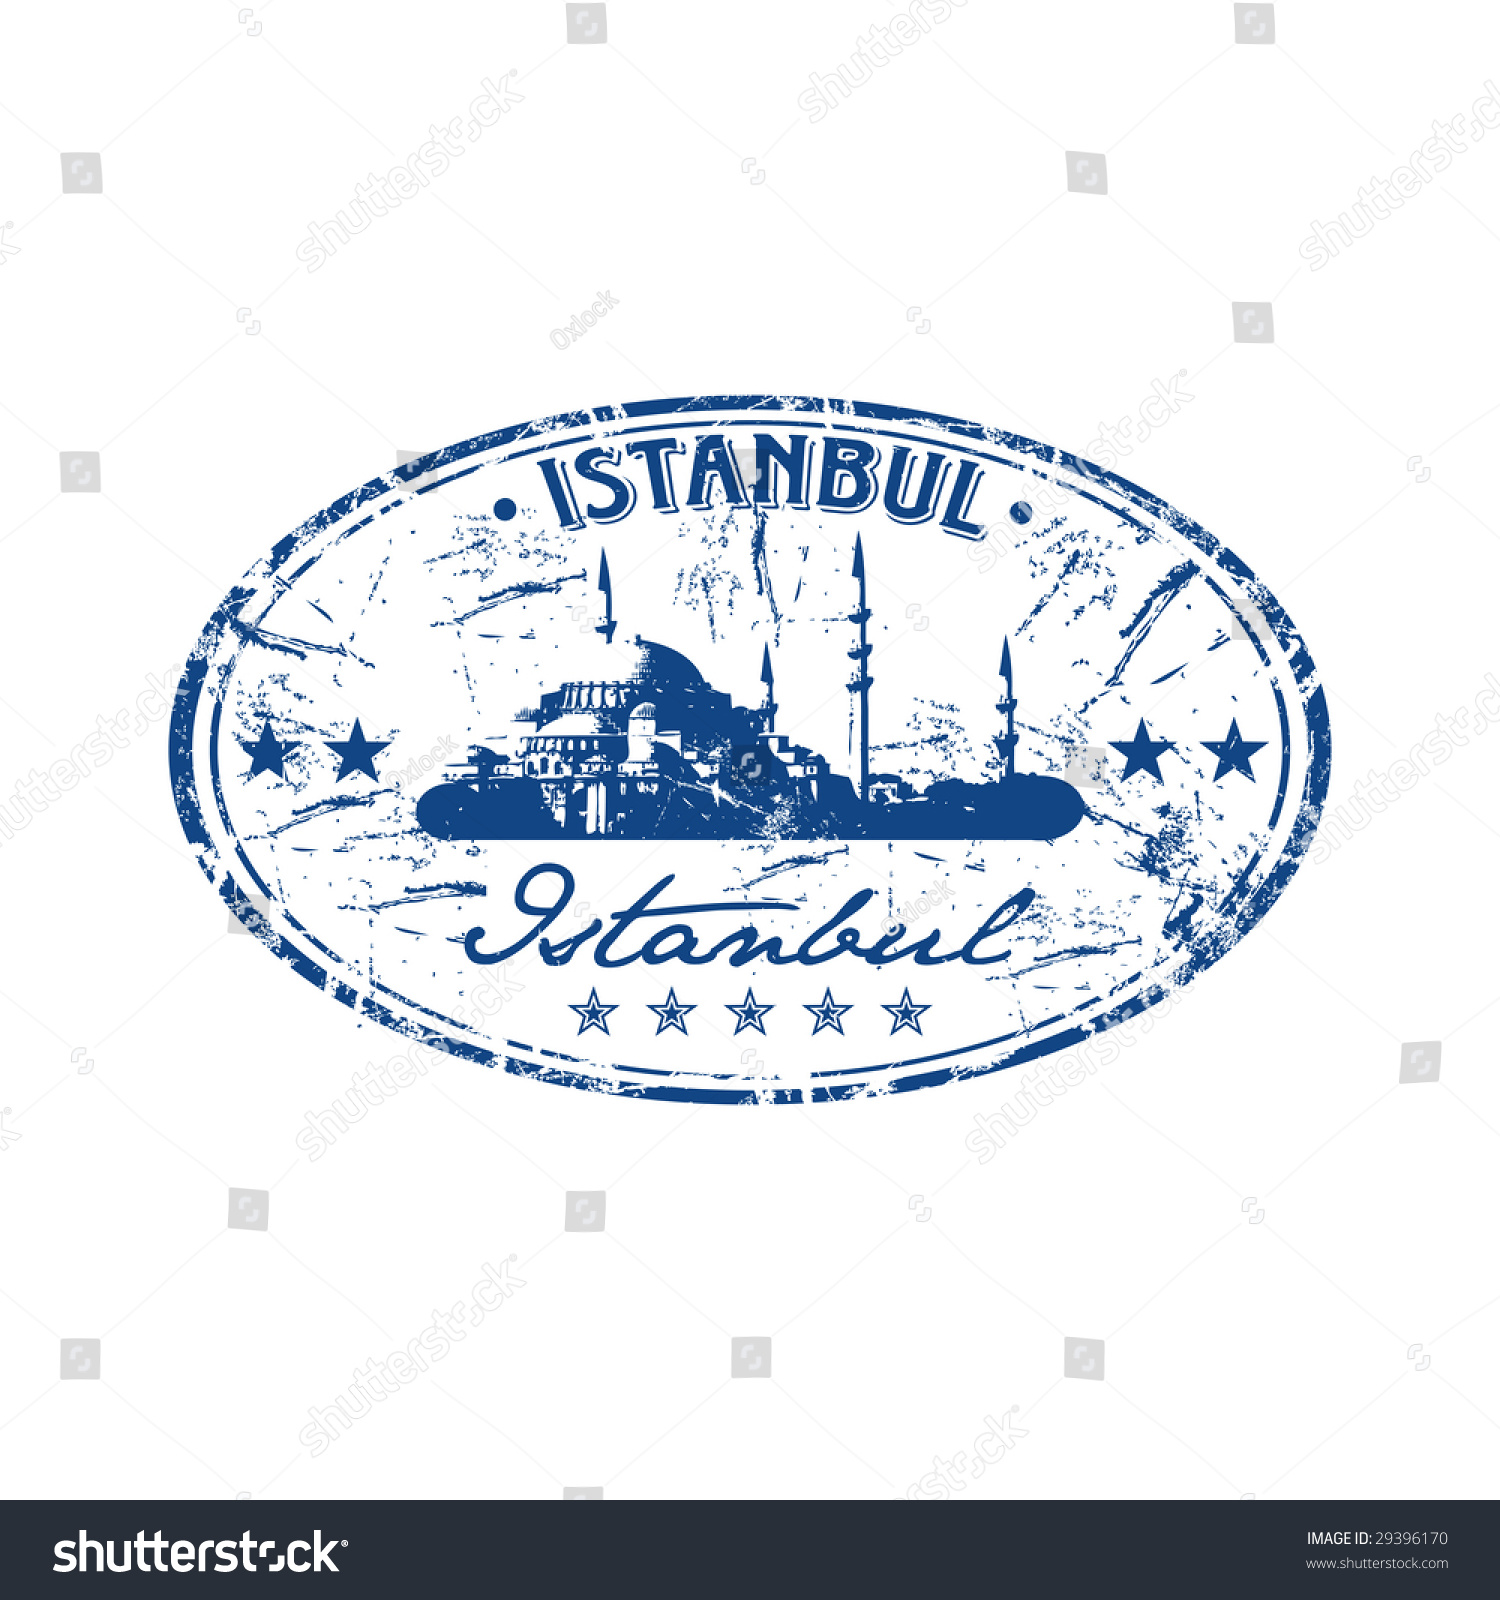 Grunge Oval Rubber Stamp With The Name Of Capital Turkey Written Inside